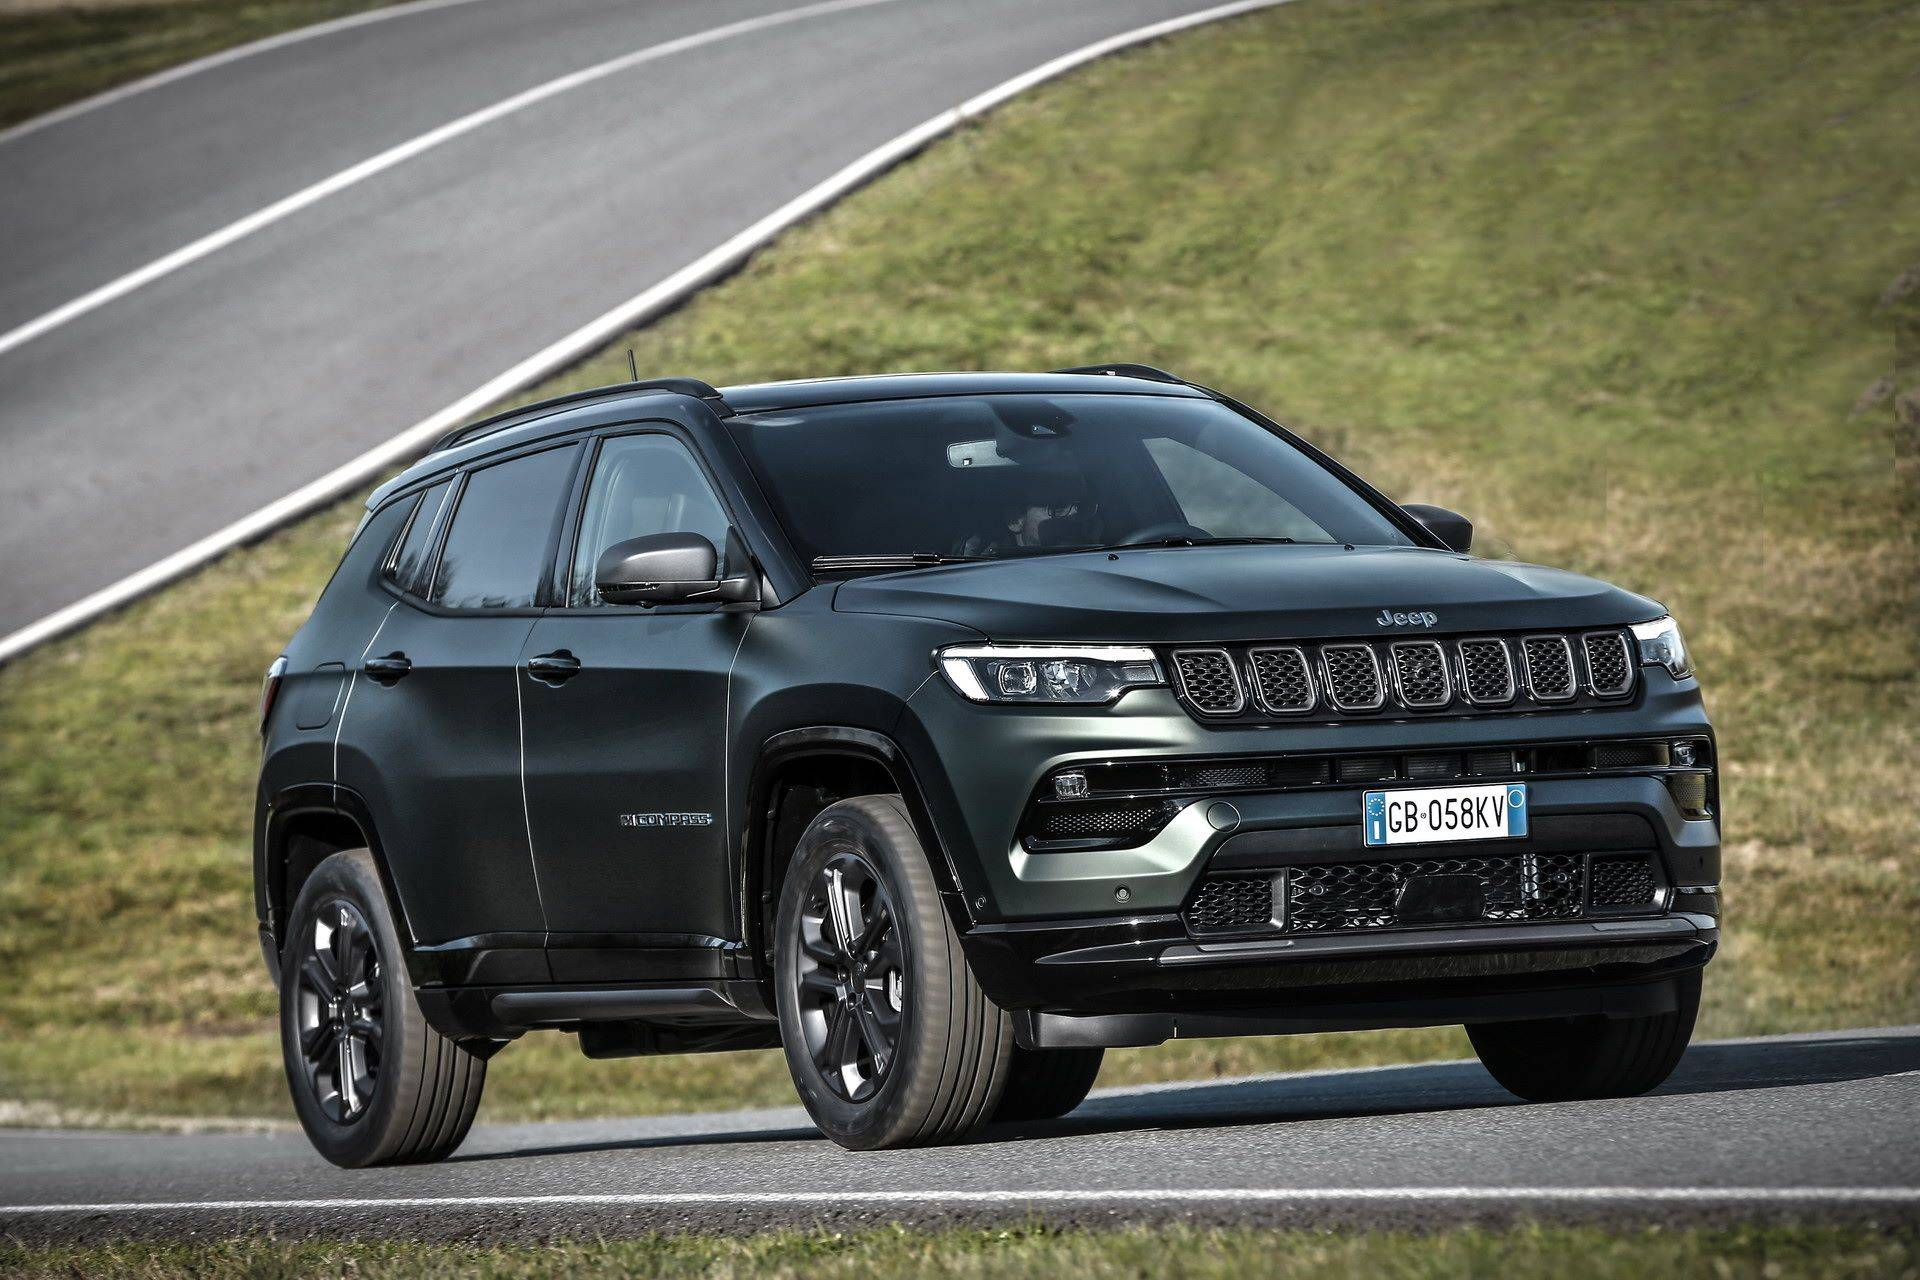 Jeep-Compass-facelift-2021-25